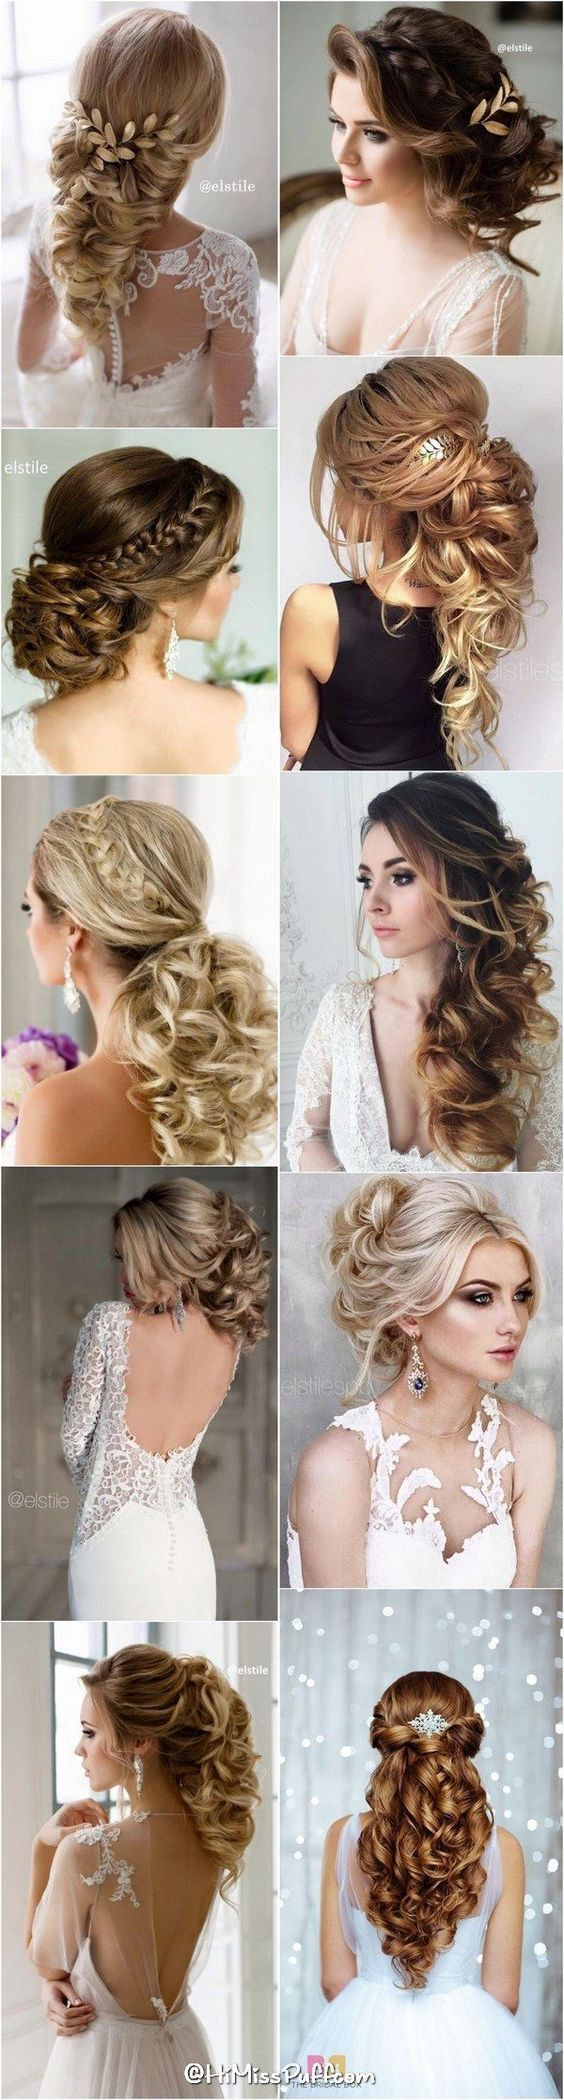 Cool bridal wedding hairstyles for long hair that will inspire